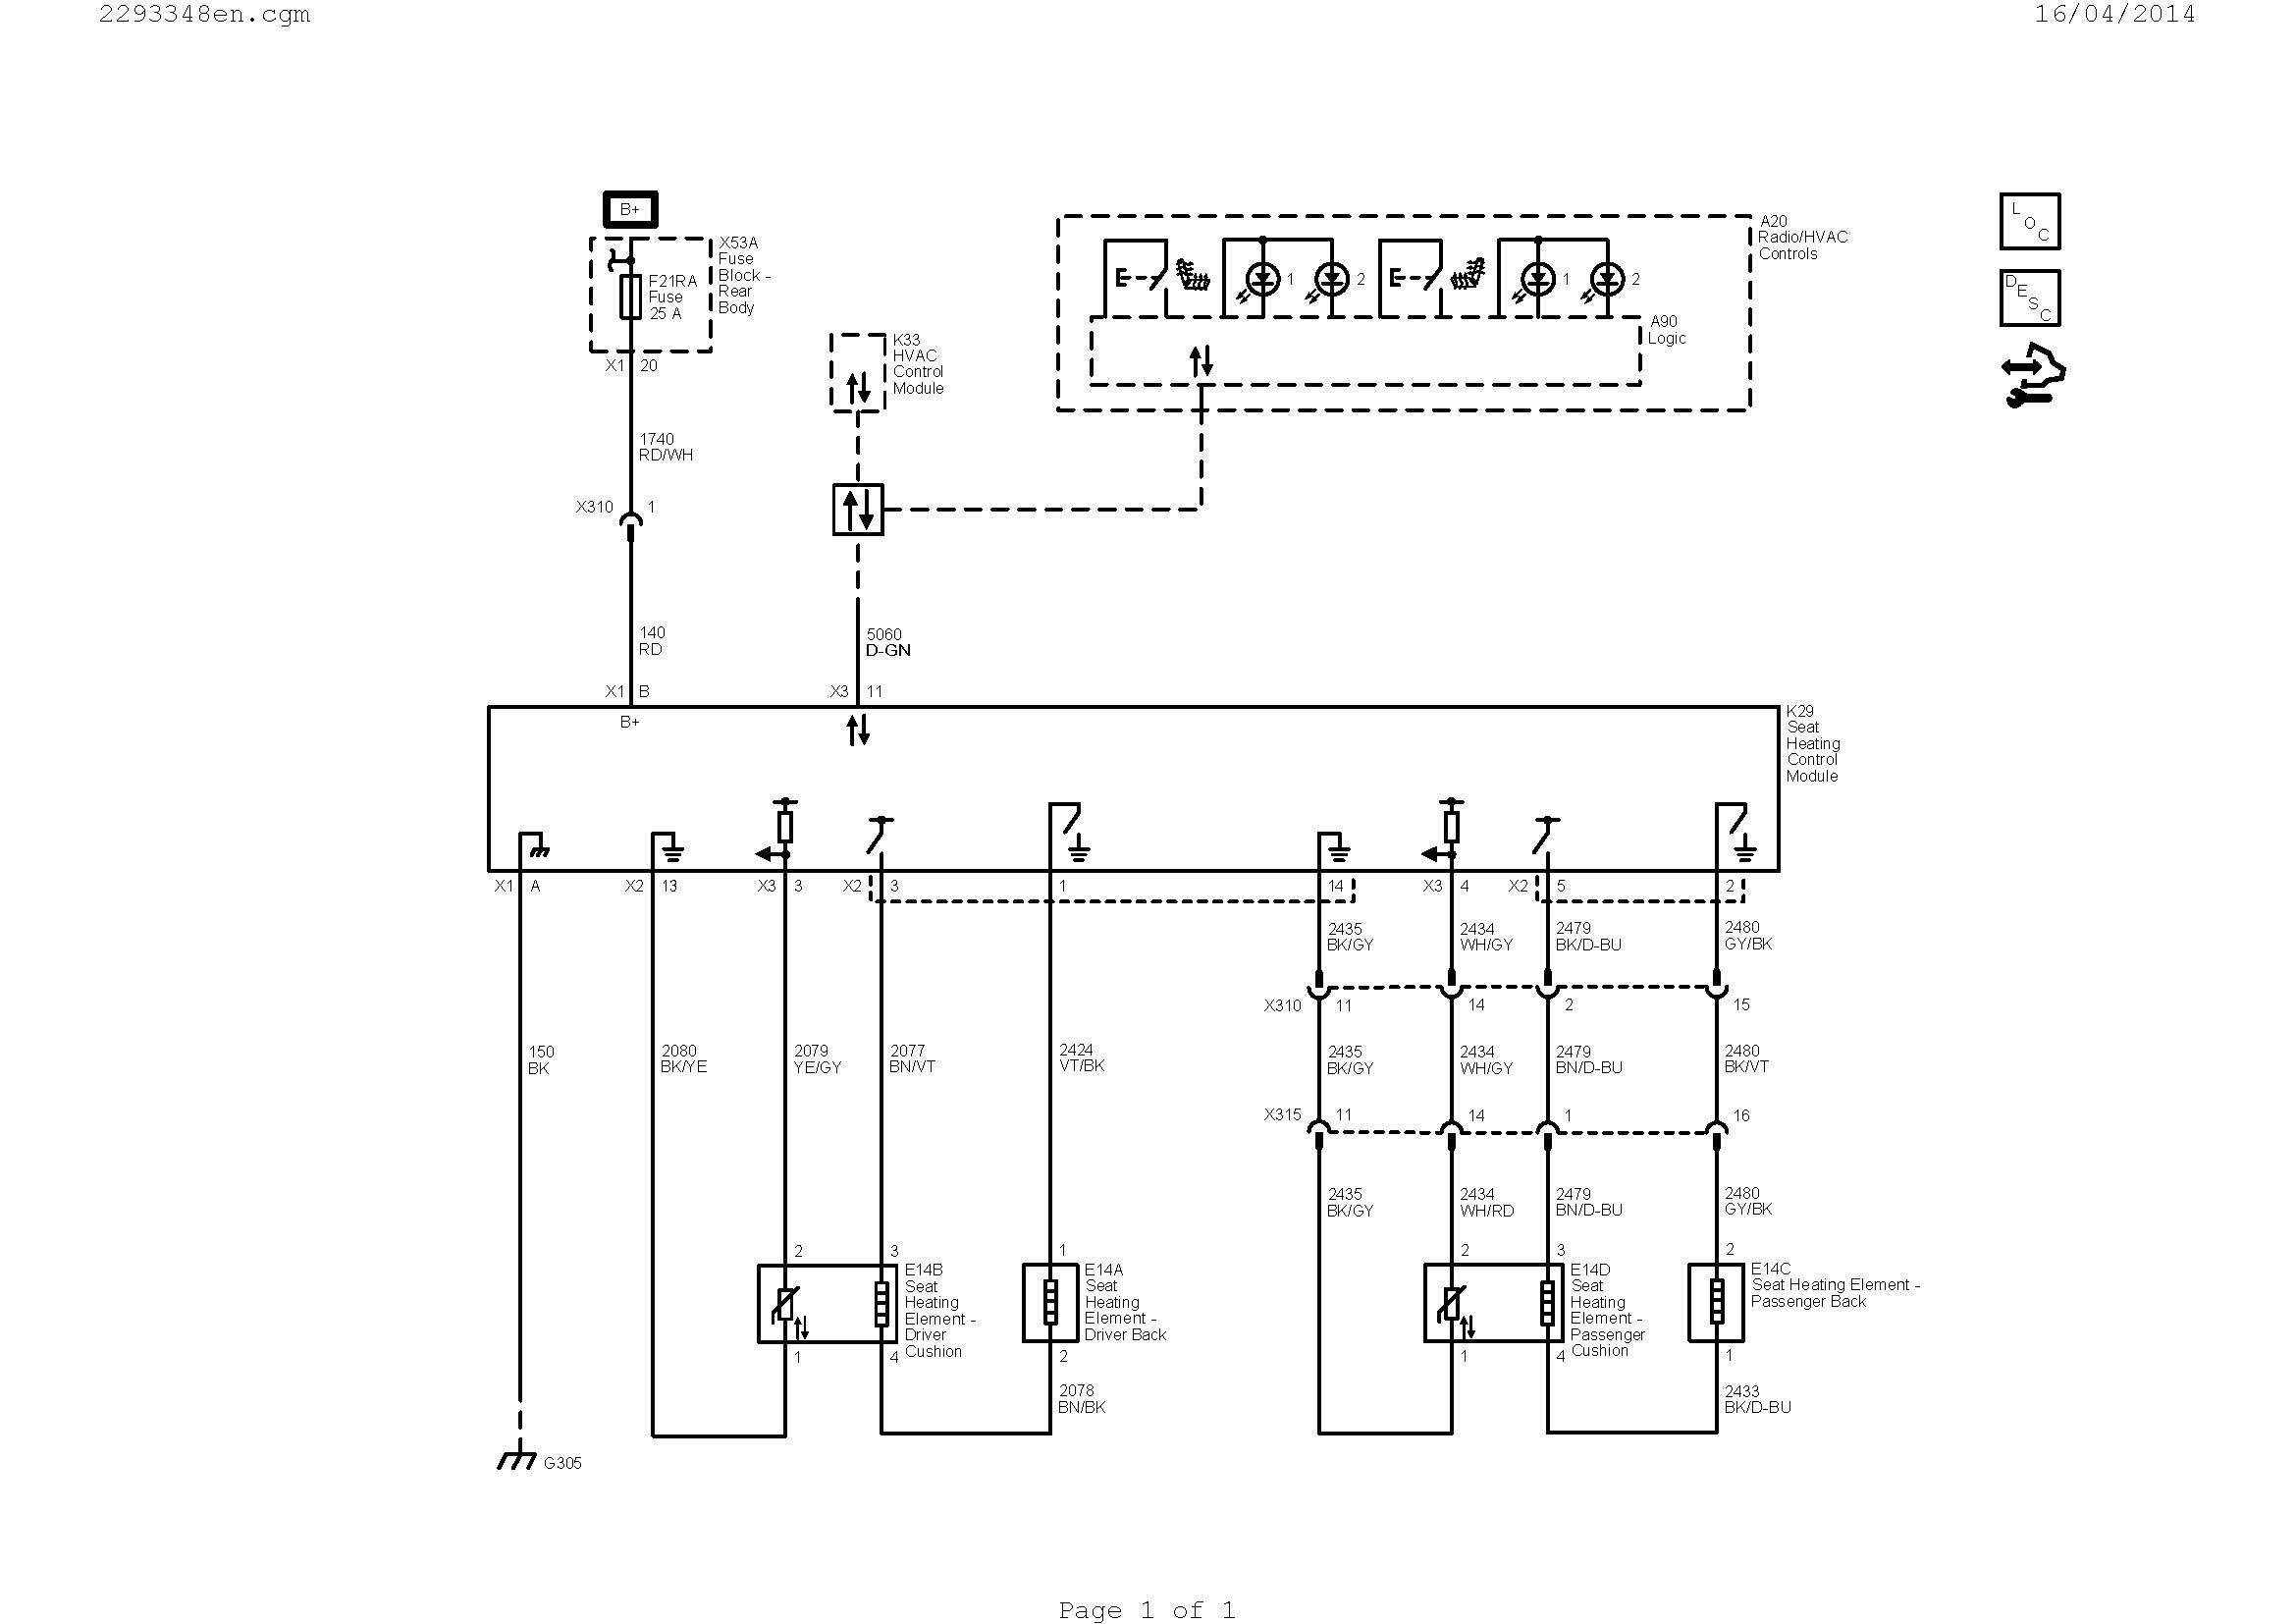 heating and cooling thermostat wiring diagram Collection-Wiring A Ac Thermostat Diagram New Wiring Diagram Ac Valid Hvac Diagram Best Hvac Diagram 0d – Wire 3-c